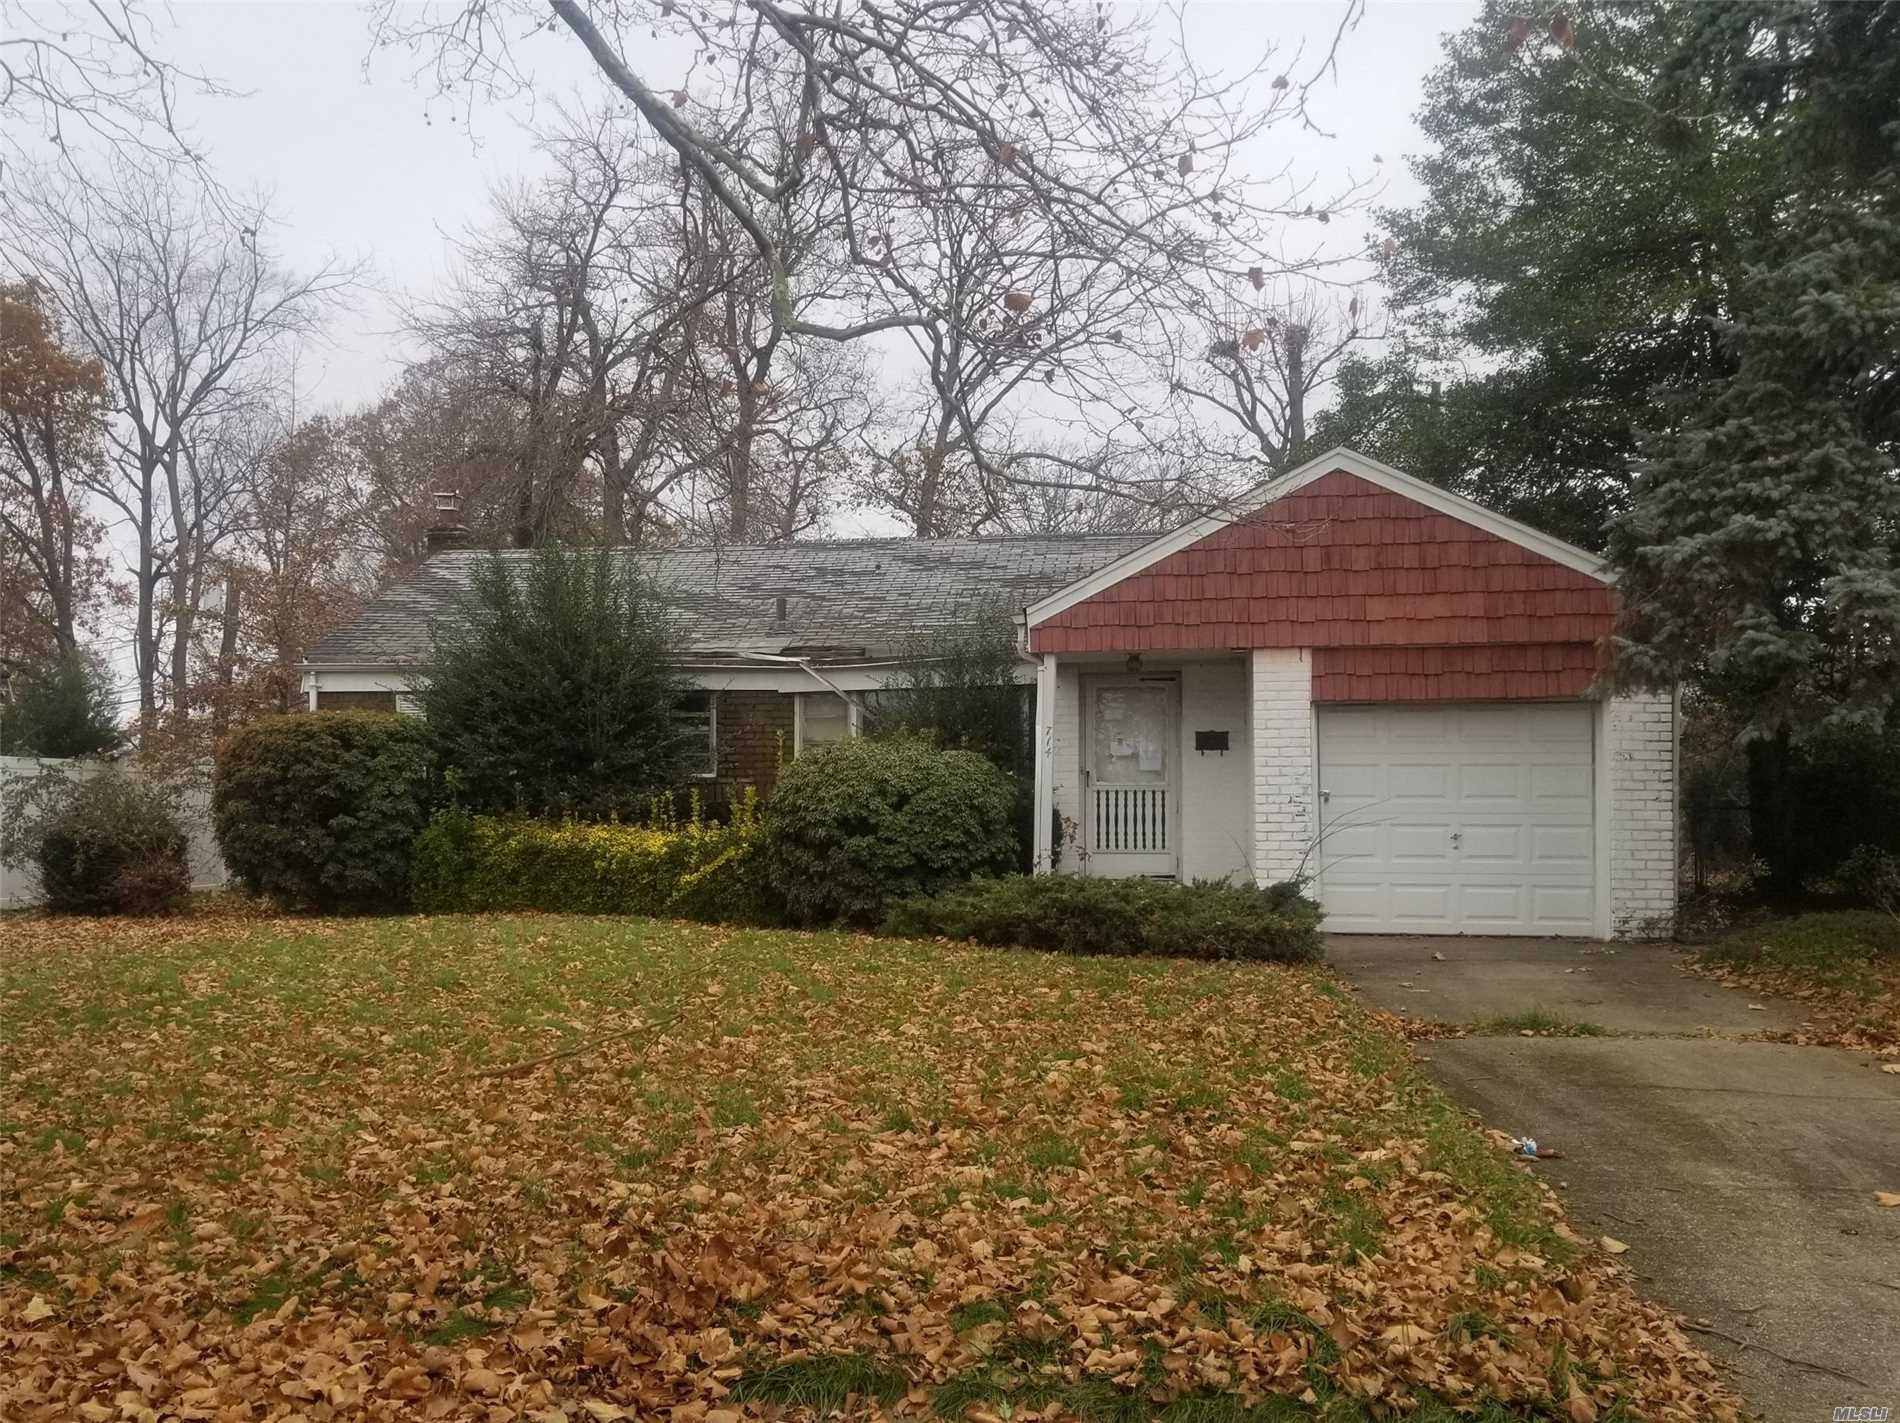 Large Ranch With 3 Bedrooms And 2 Bath. Close To Shopping, Transportation And Major Roadways.